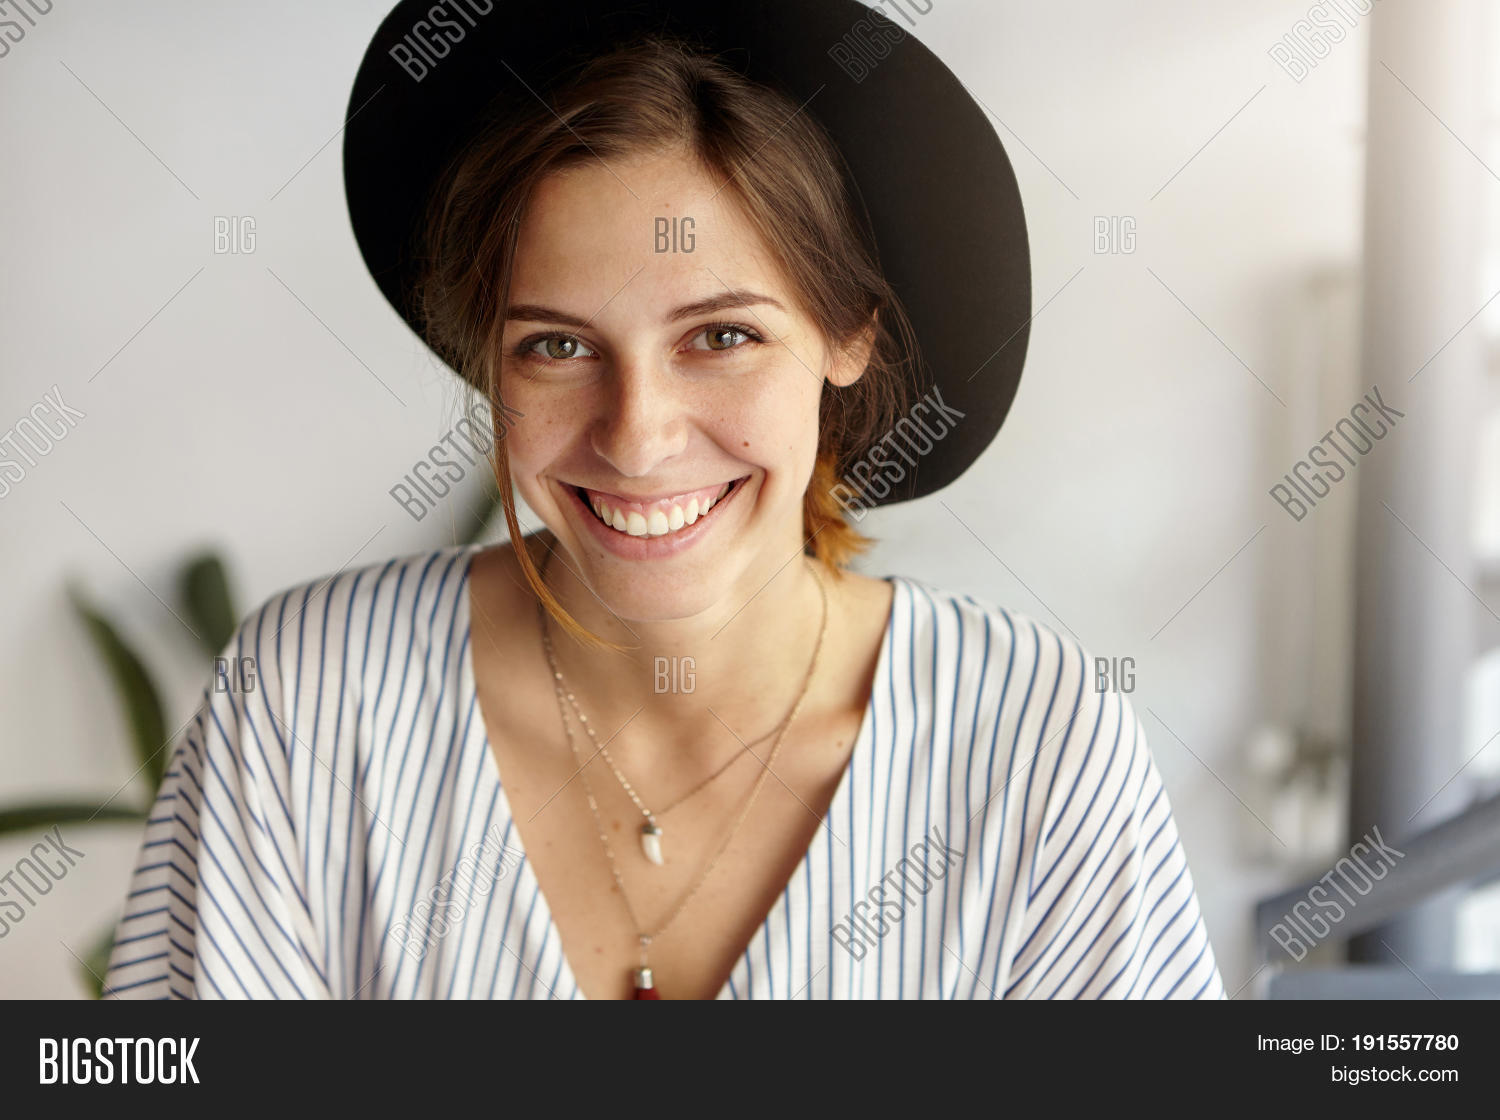 f840109f99ab6 Waist up portrait of beautiful European female with dark eyes warm smile  and dark hair wearing black hat and blouse posing in camera having good  mood.